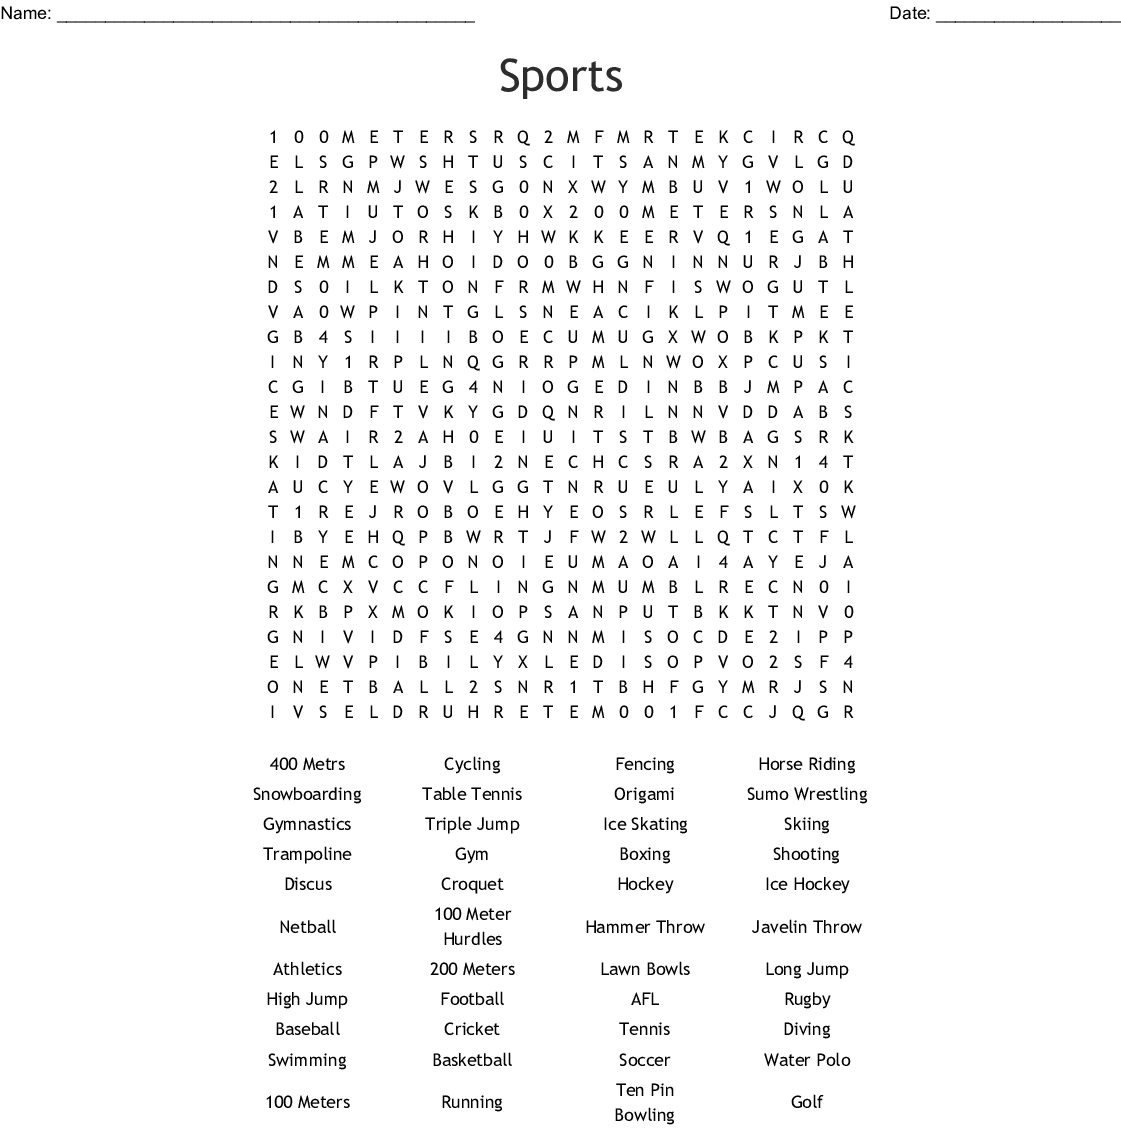 Sports Find A Word Word Search